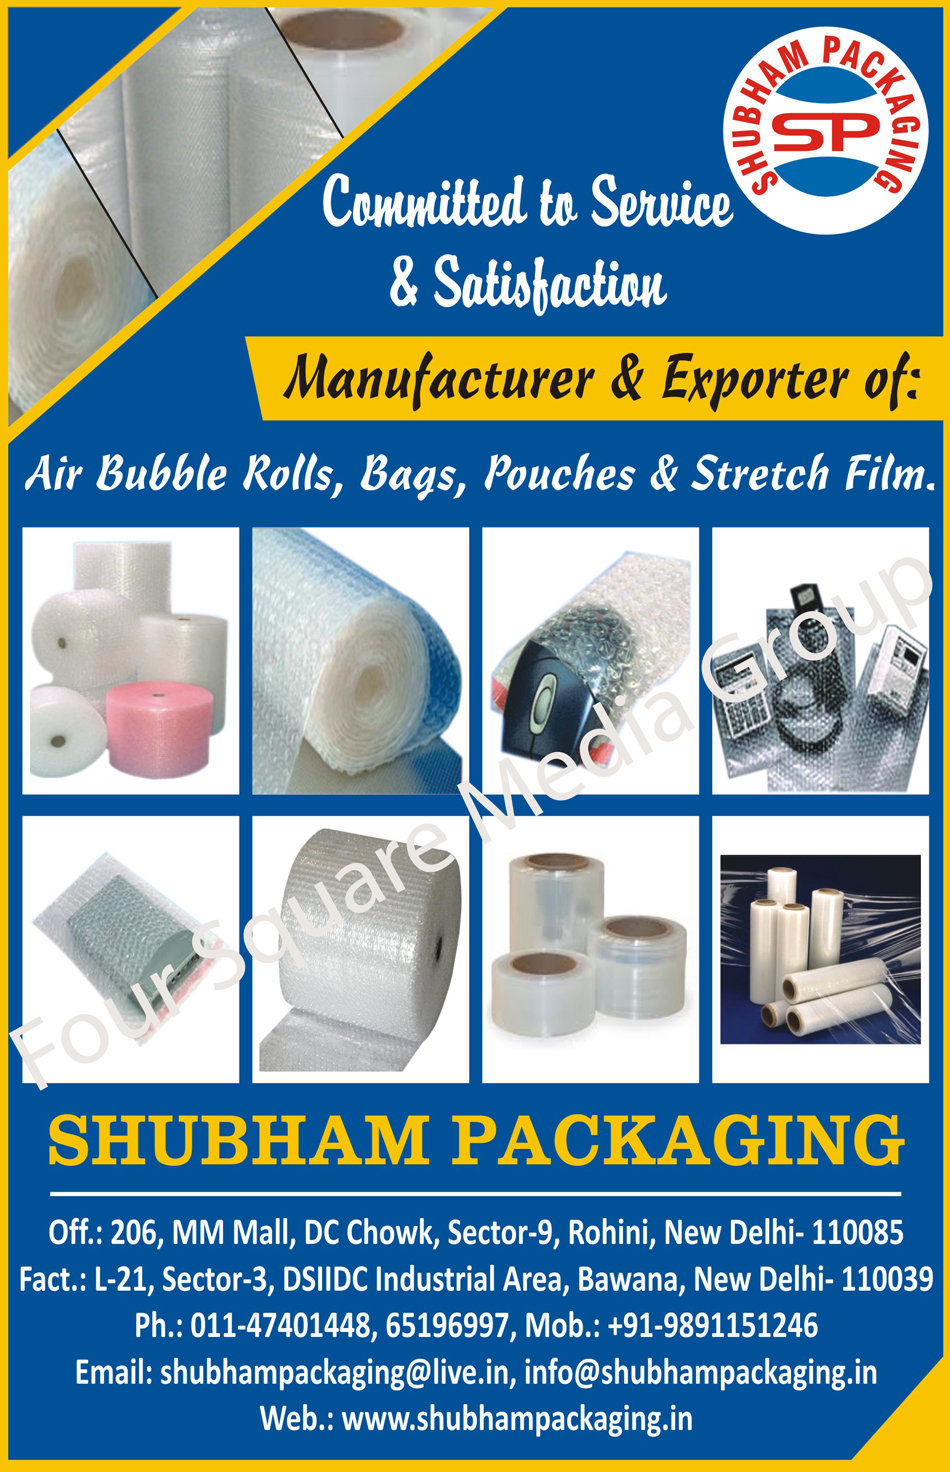 Air Bubble Rolls, Air Bubble Bags, Air Bubble Pouches, Stretch Films